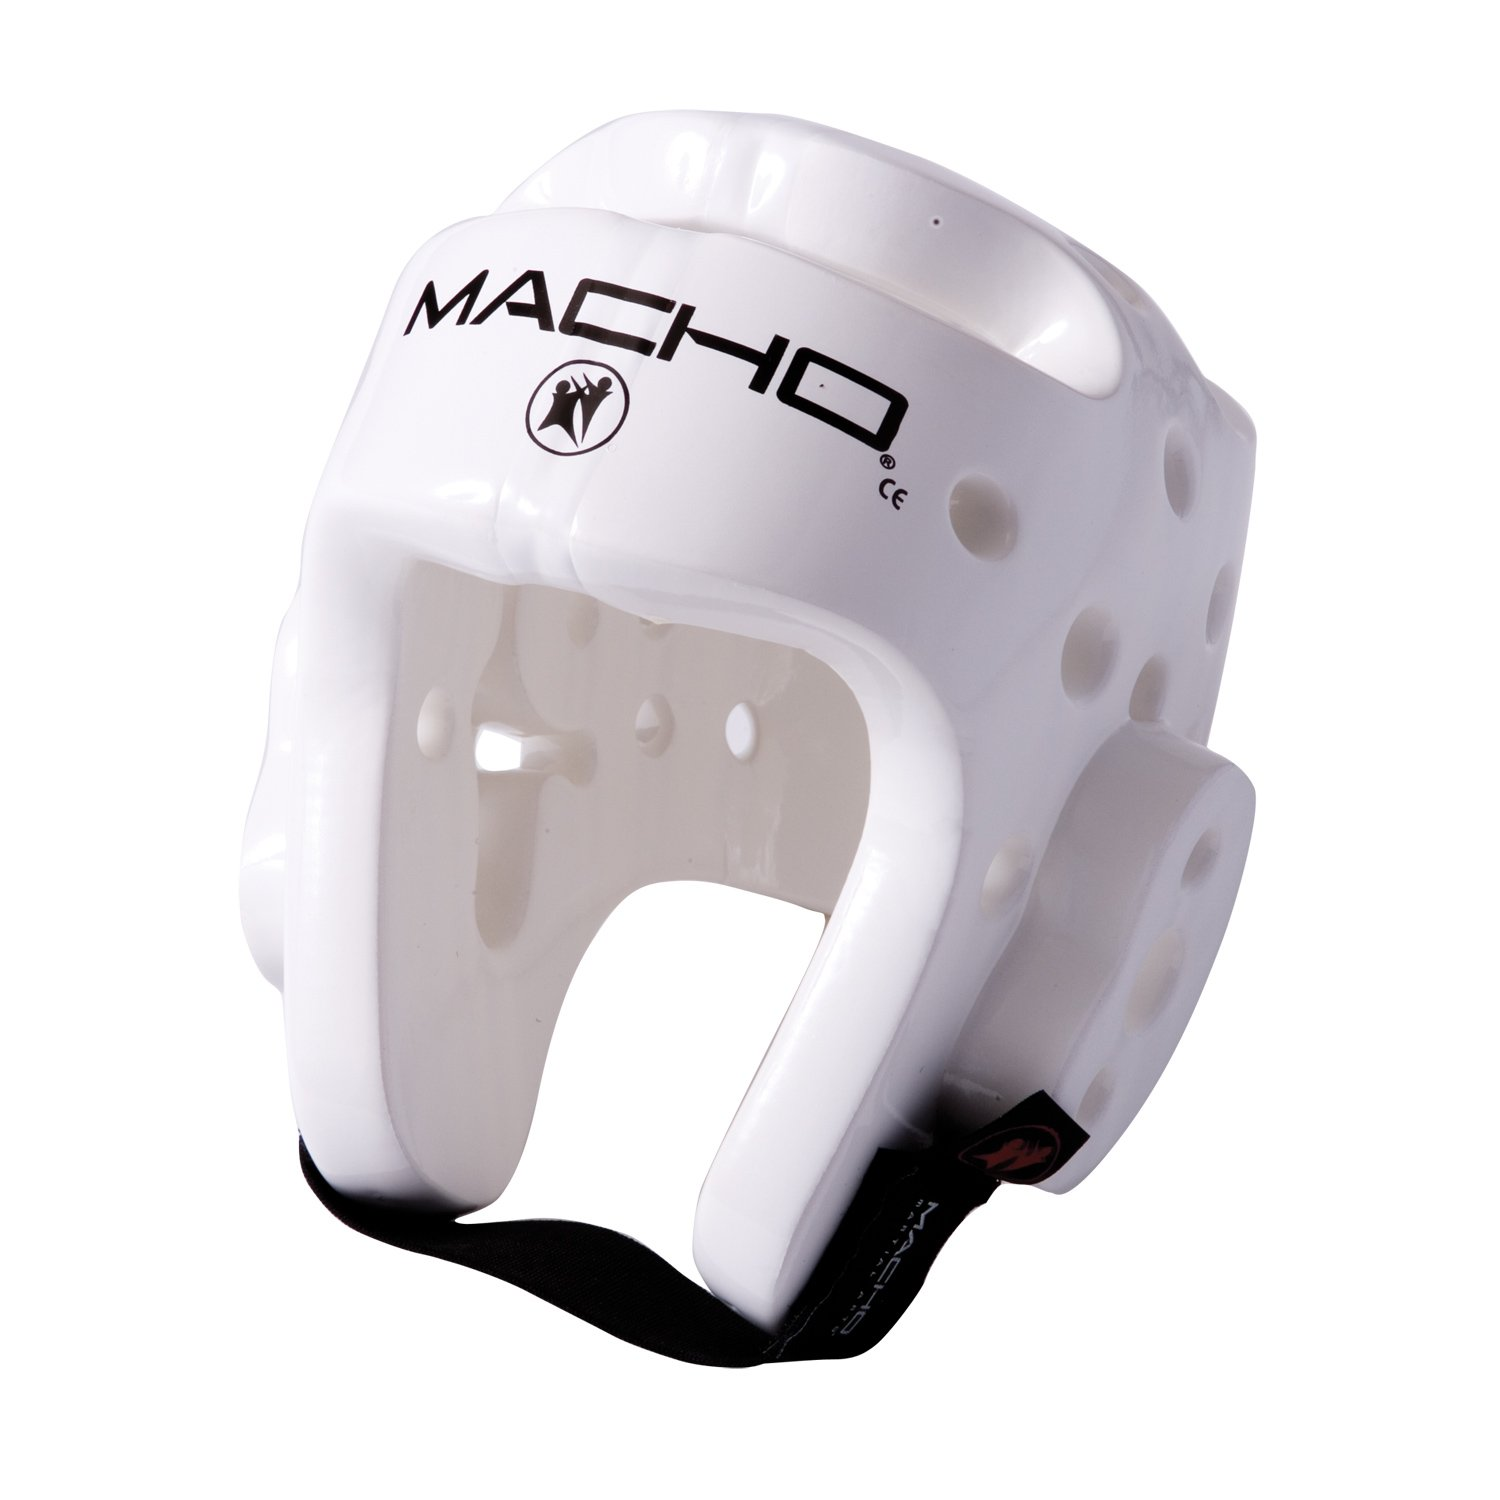 Macho Dyna空手 Headgear/ Martial – Arts XL Headgear – ホワイト – XL B008WGDR5O, Kitchen Garden:87f92140 --- capela.dominiotemporario.com